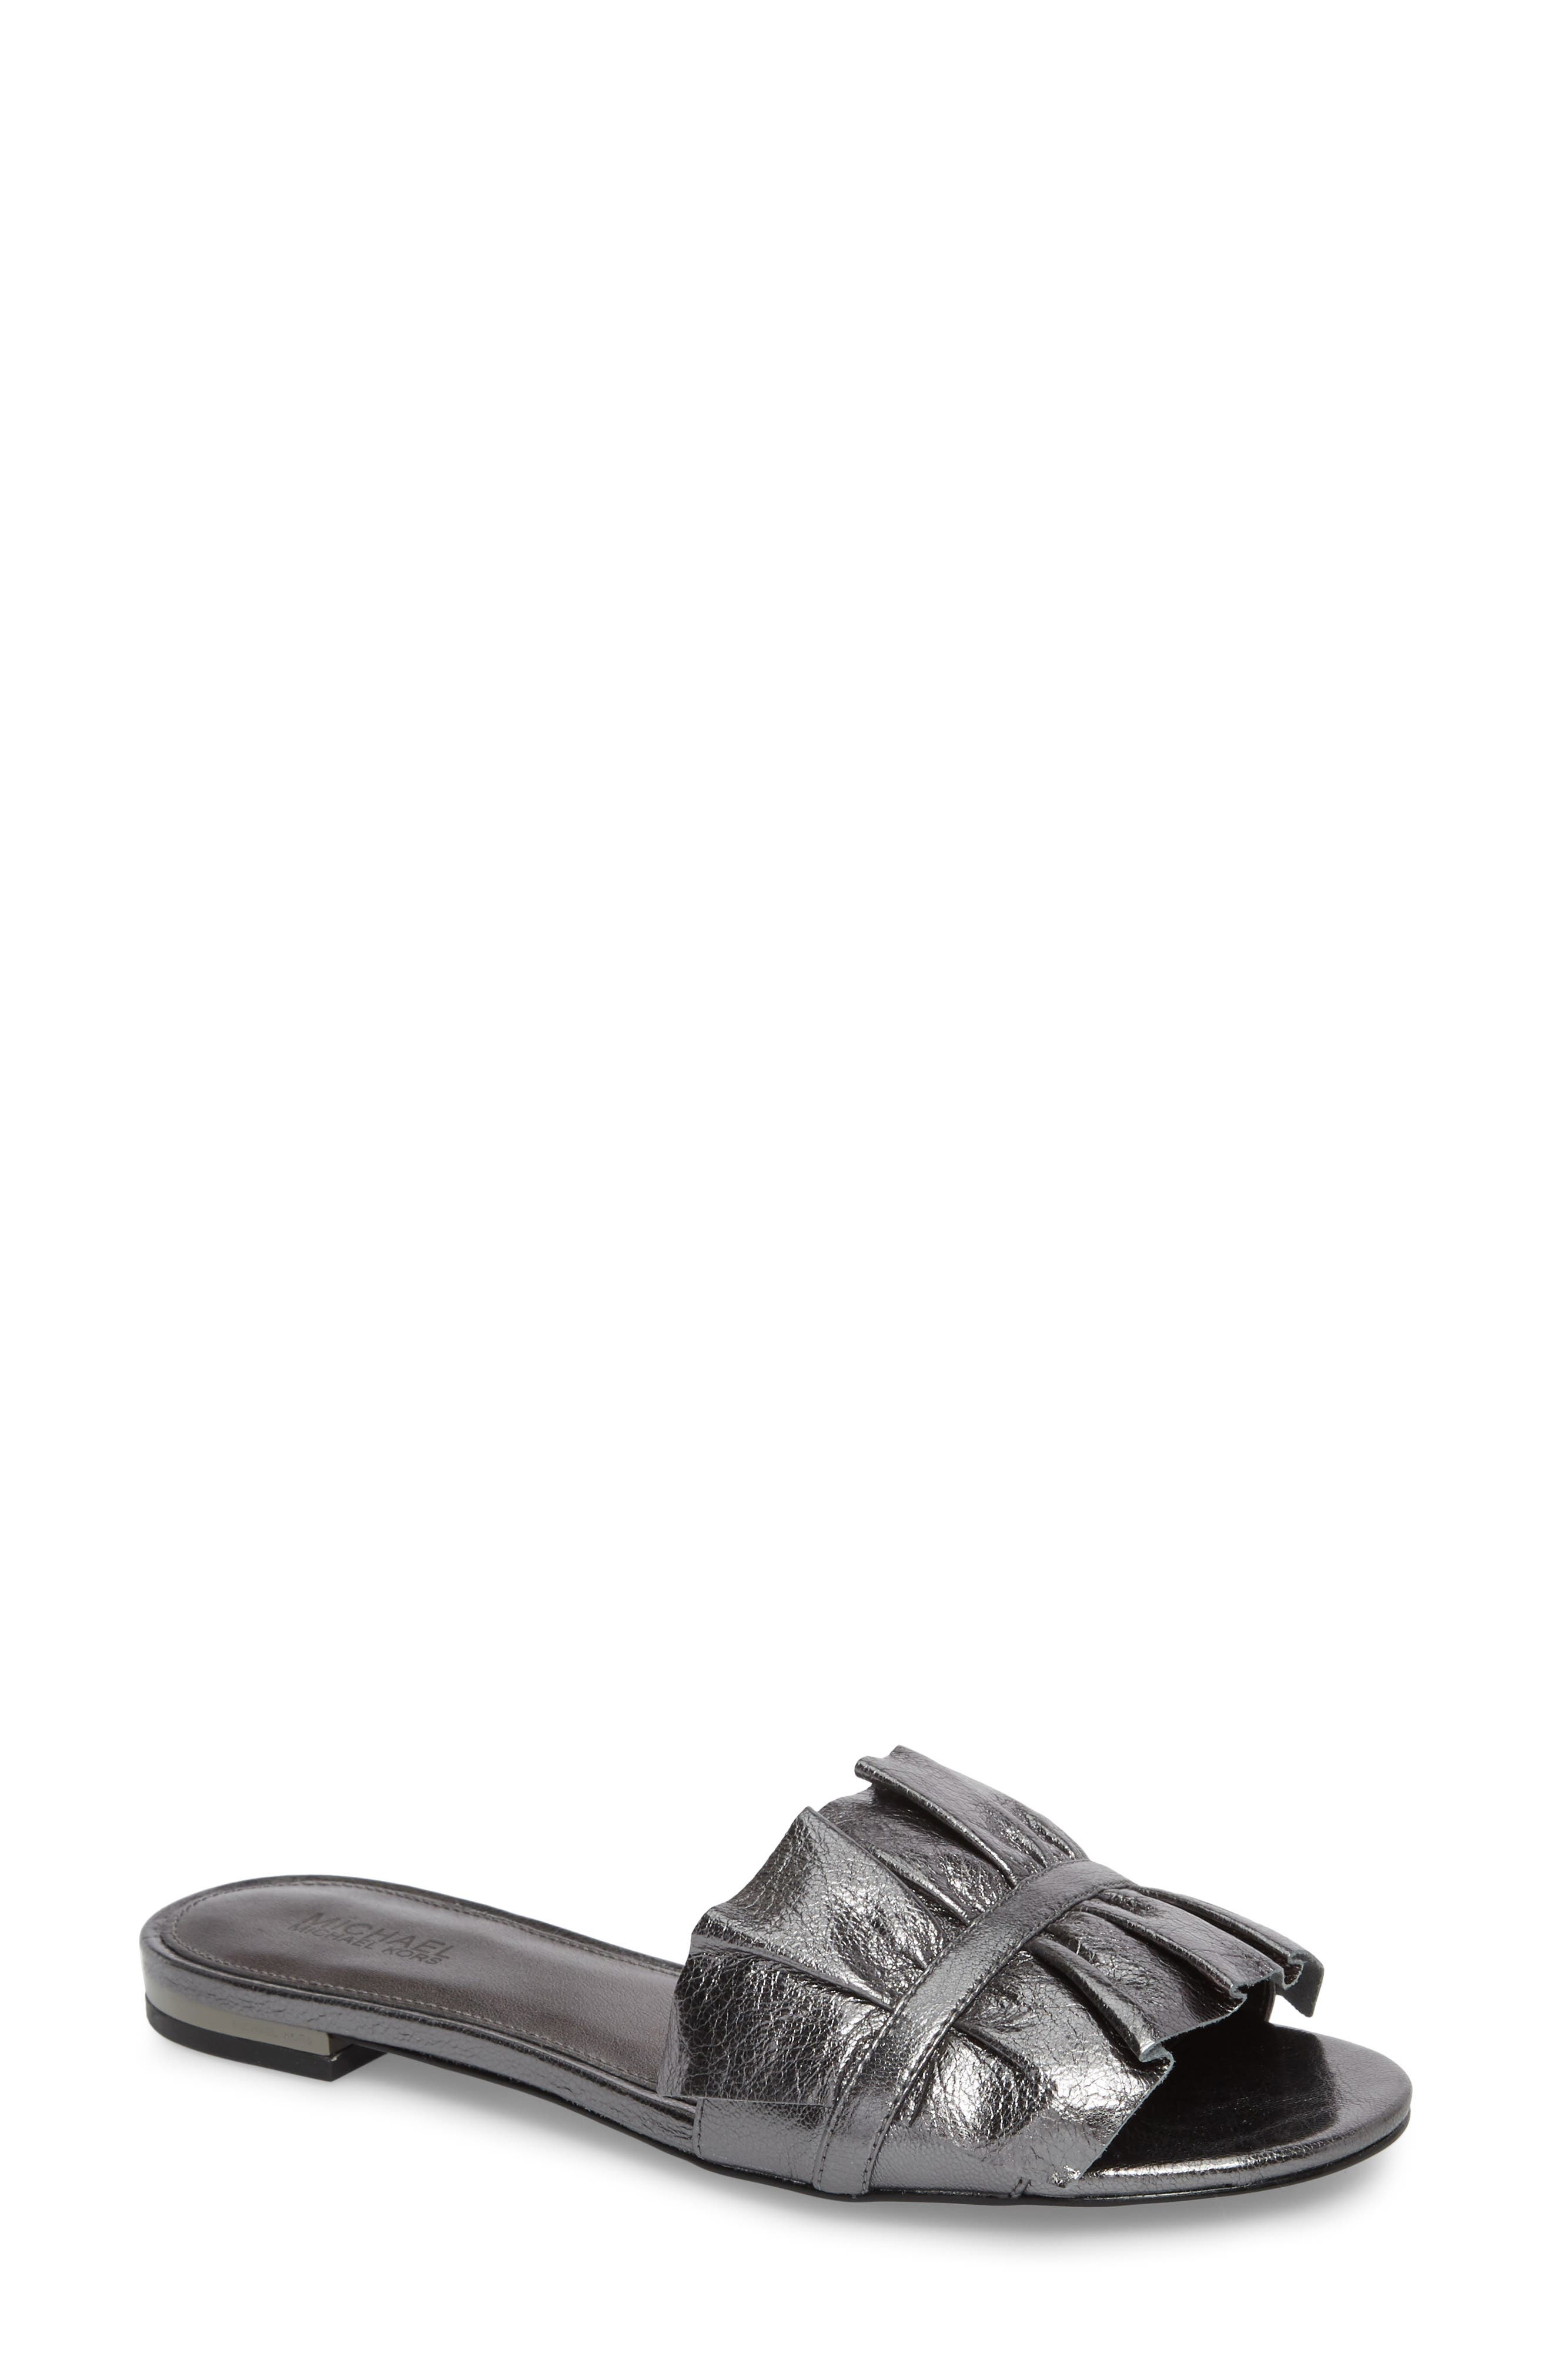 Bella Ruffle Slide Sandal,                         Main,                         color, Gunmetal Nappa Leather